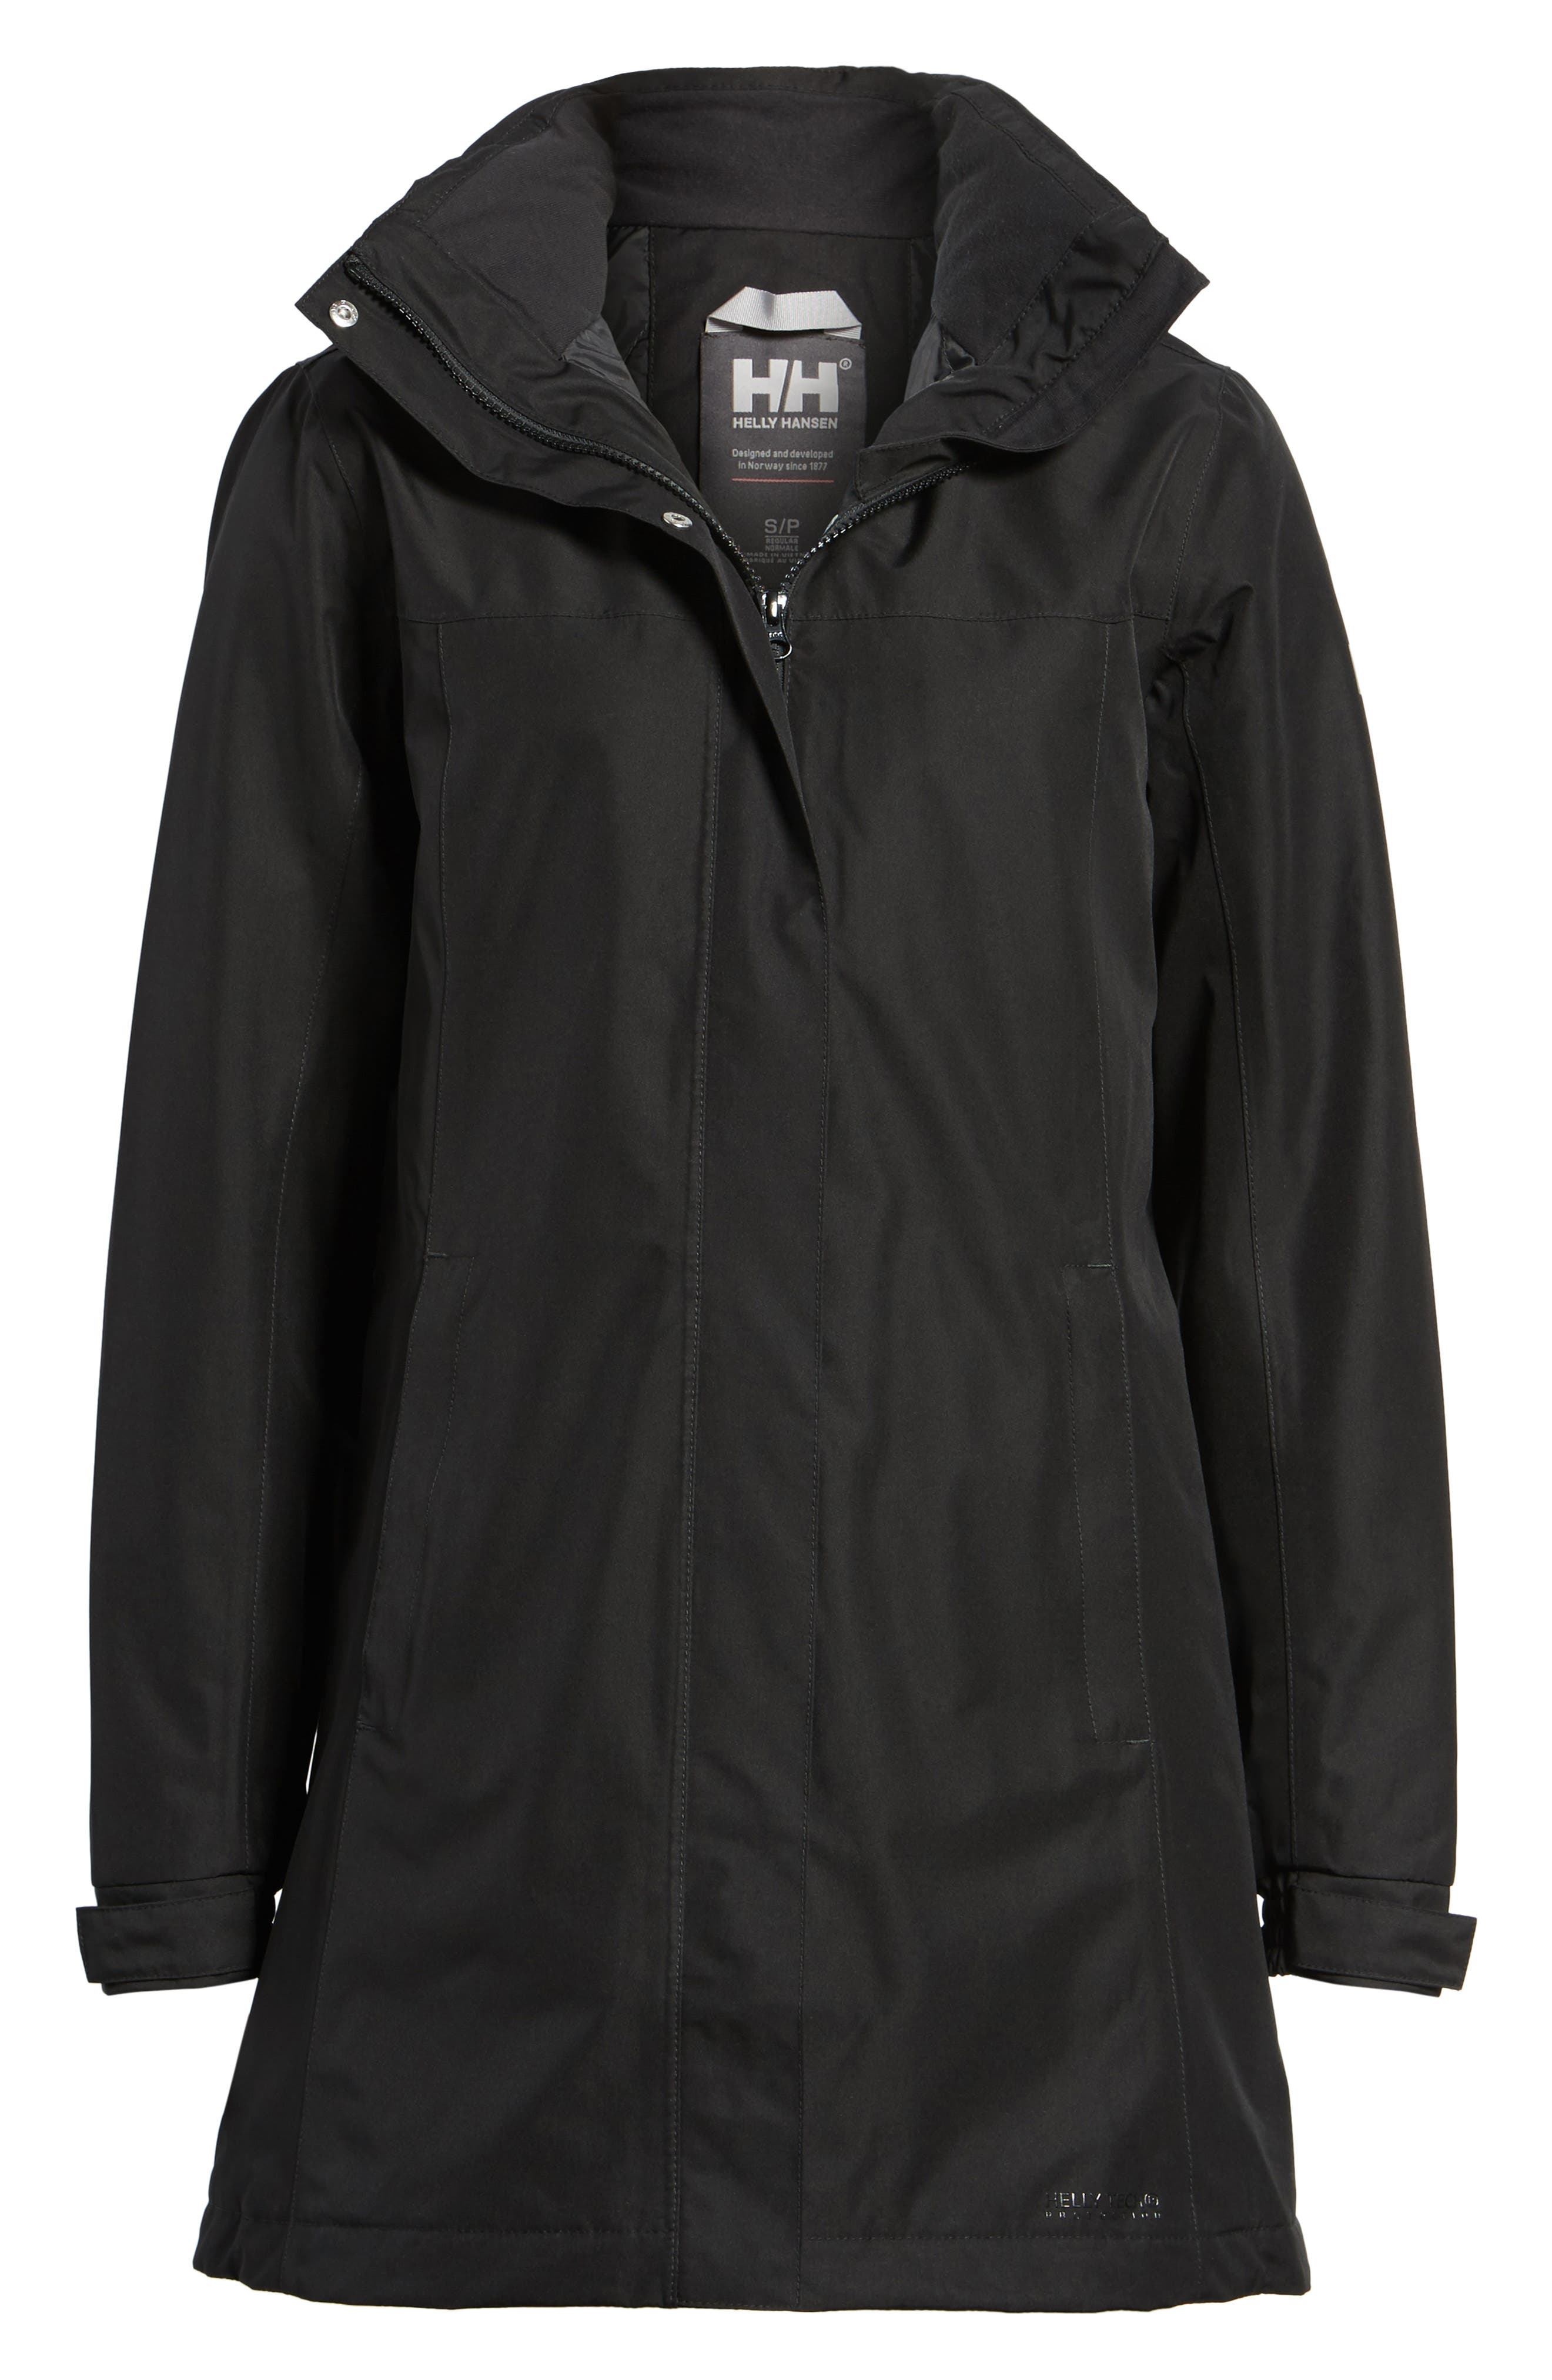 Aden Hooded Insulated Rain Jacket,                             Alternate thumbnail 7, color,                             Black